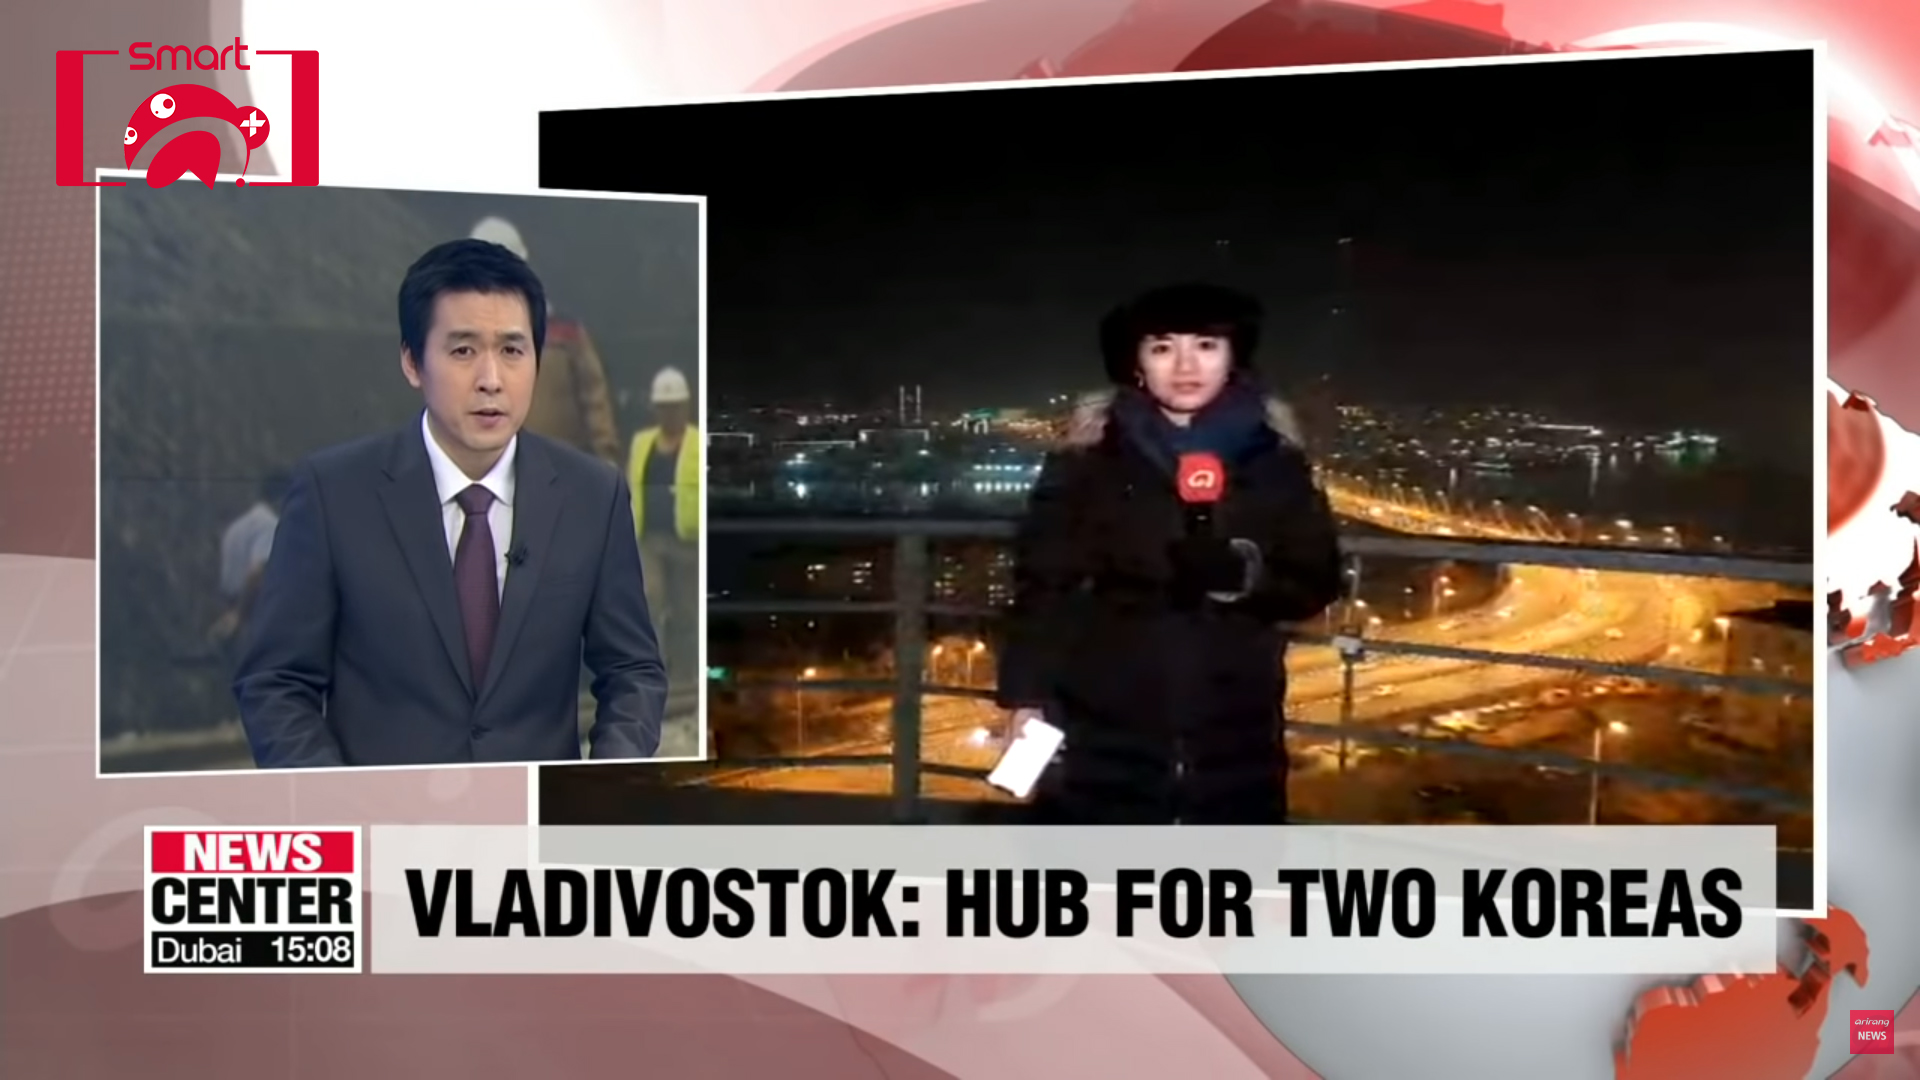 Vladivostock: Economic hub for two Koreas